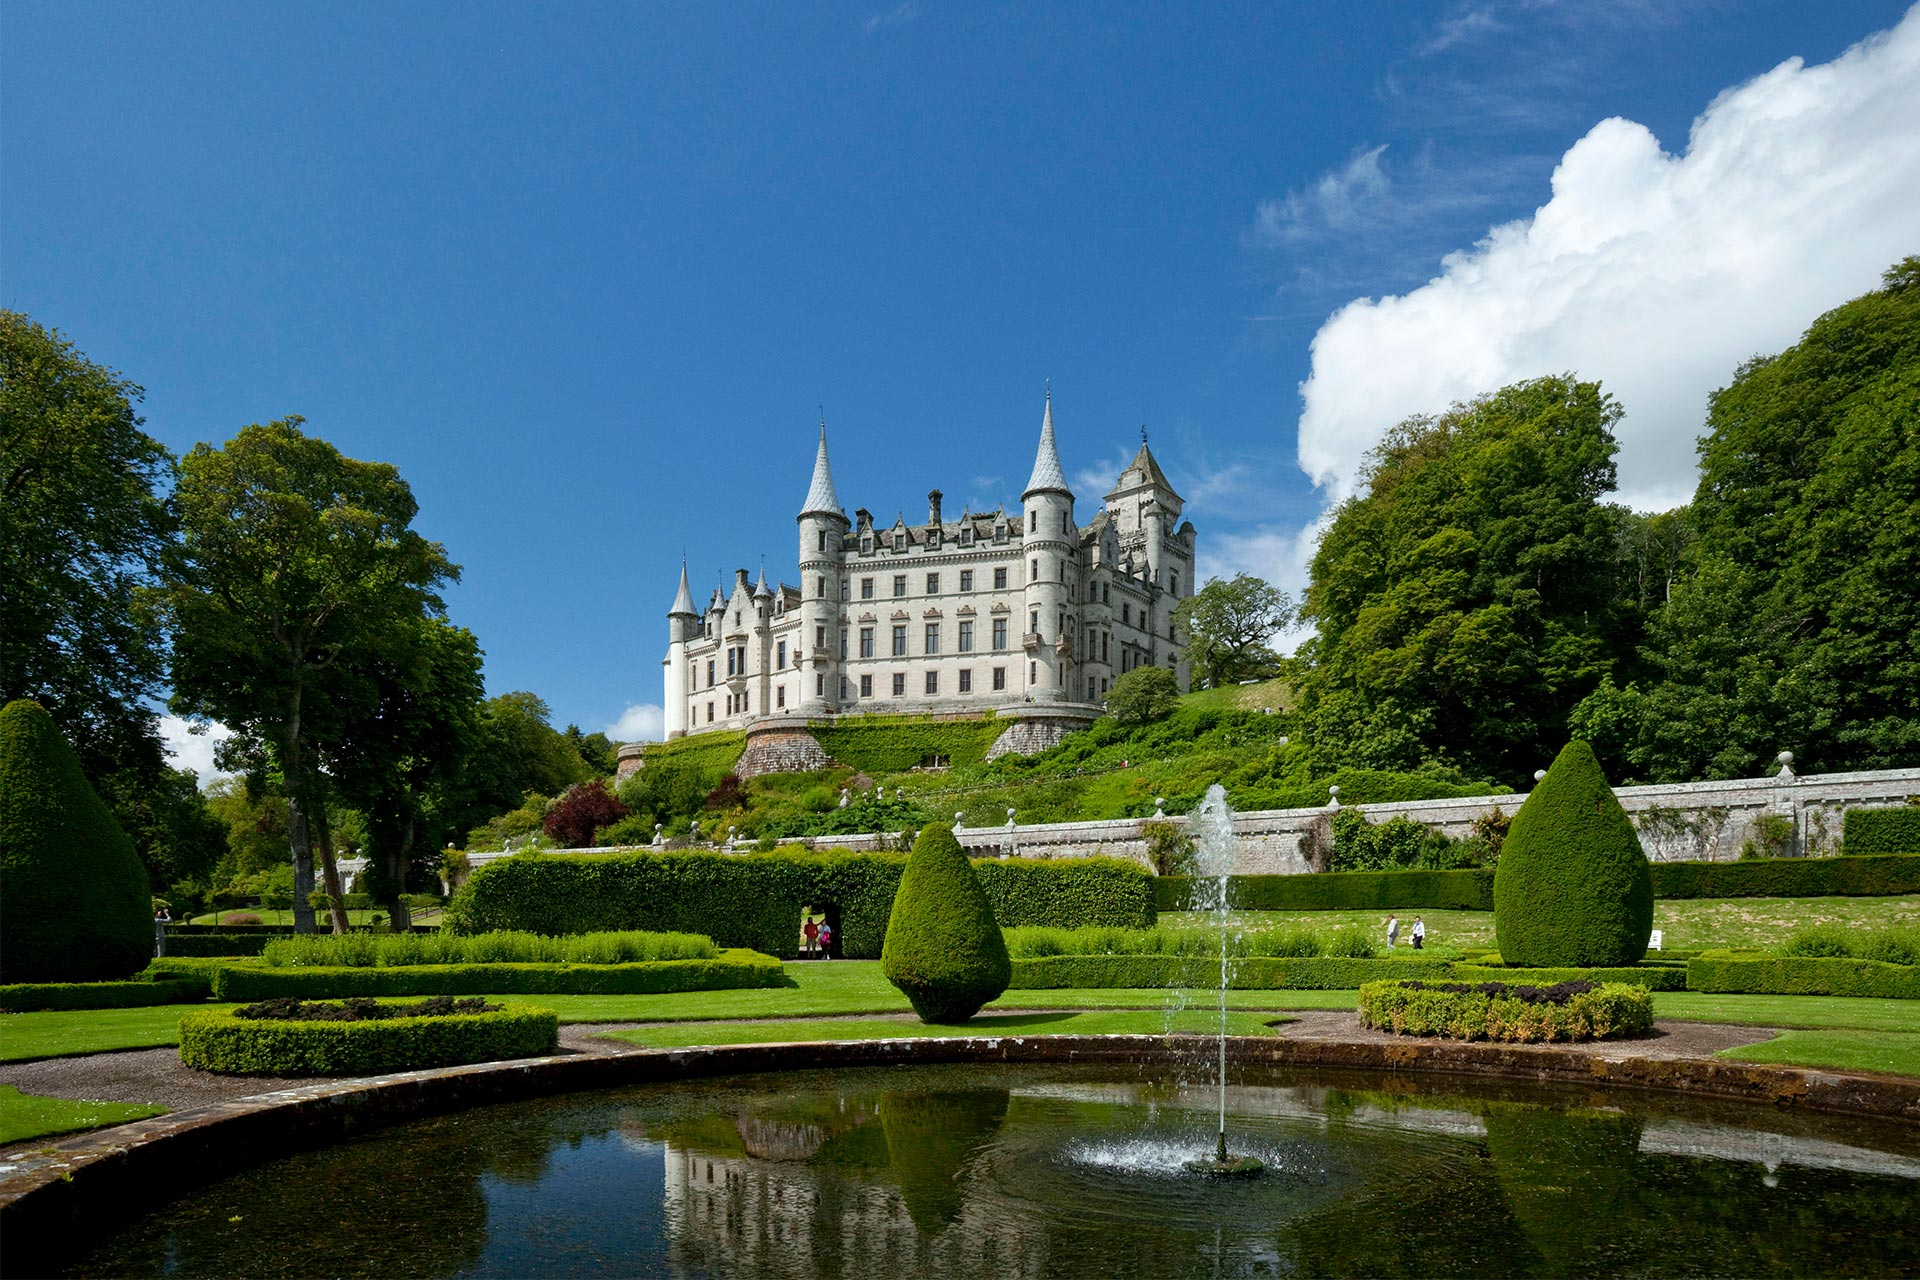 Dunrobin Castle, near Golspie, Sutherland in the Highlands